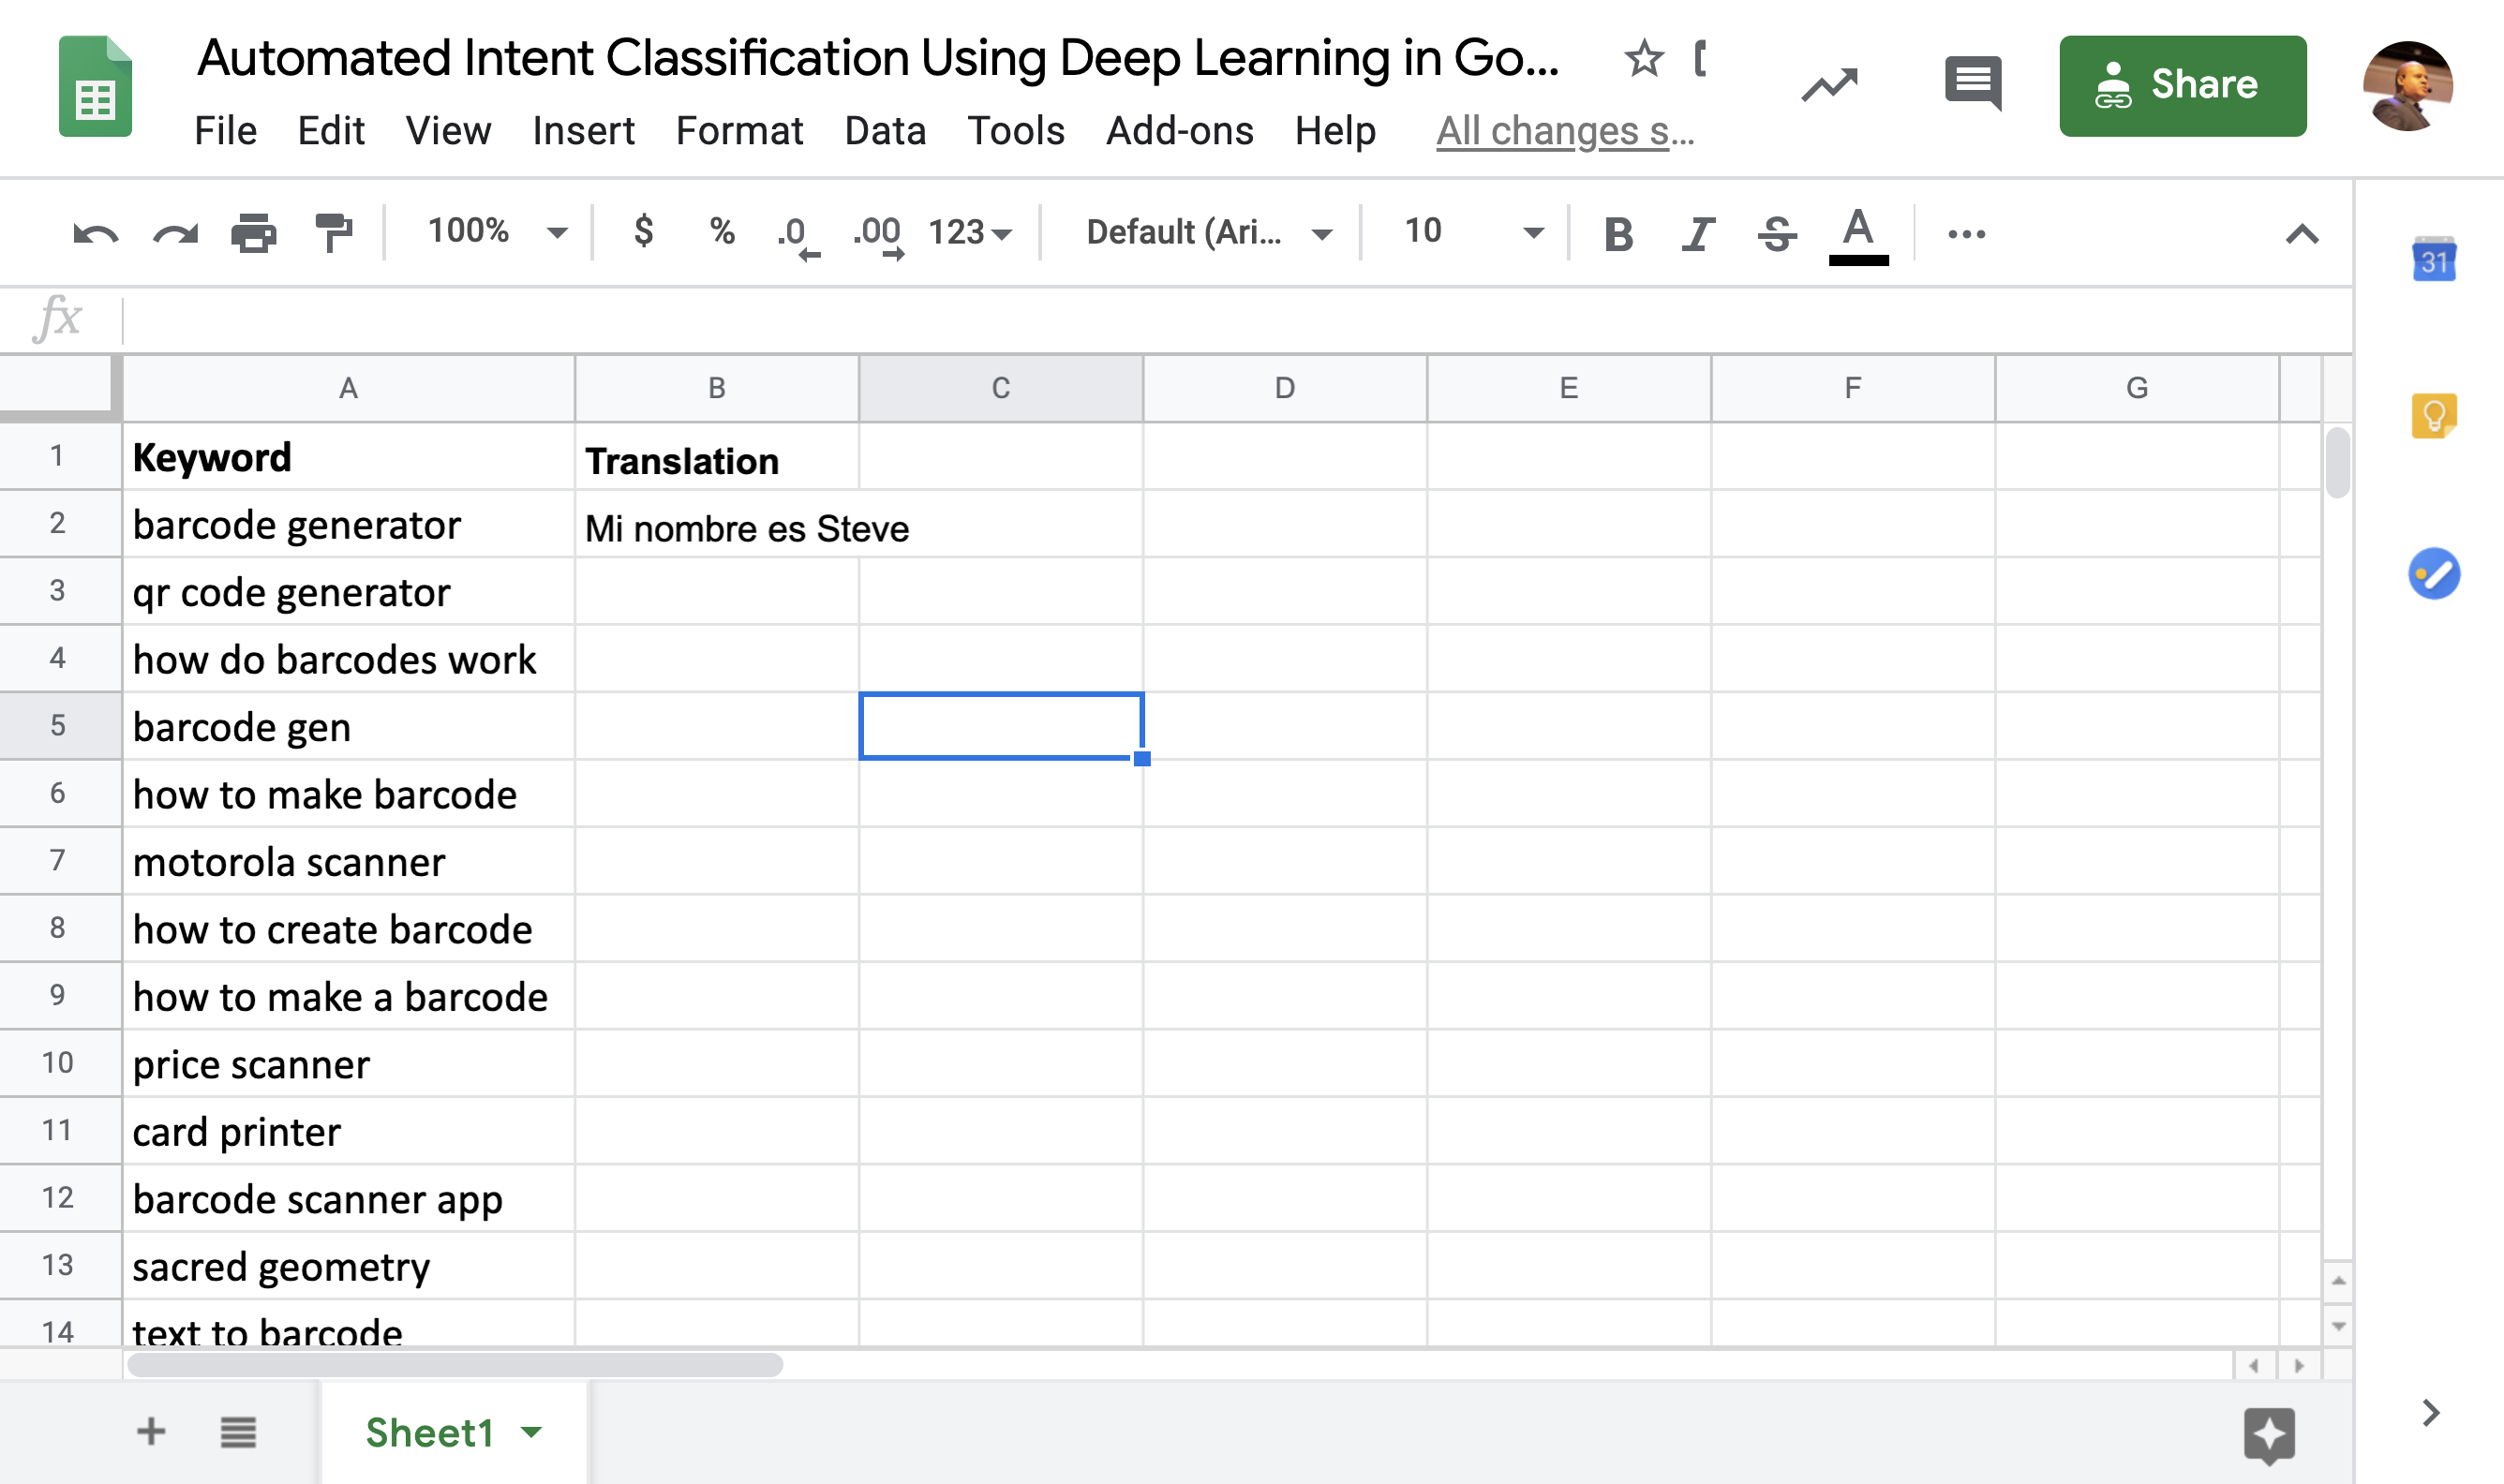 Automated Intent Classification Using Deep Learning in Google Sheets